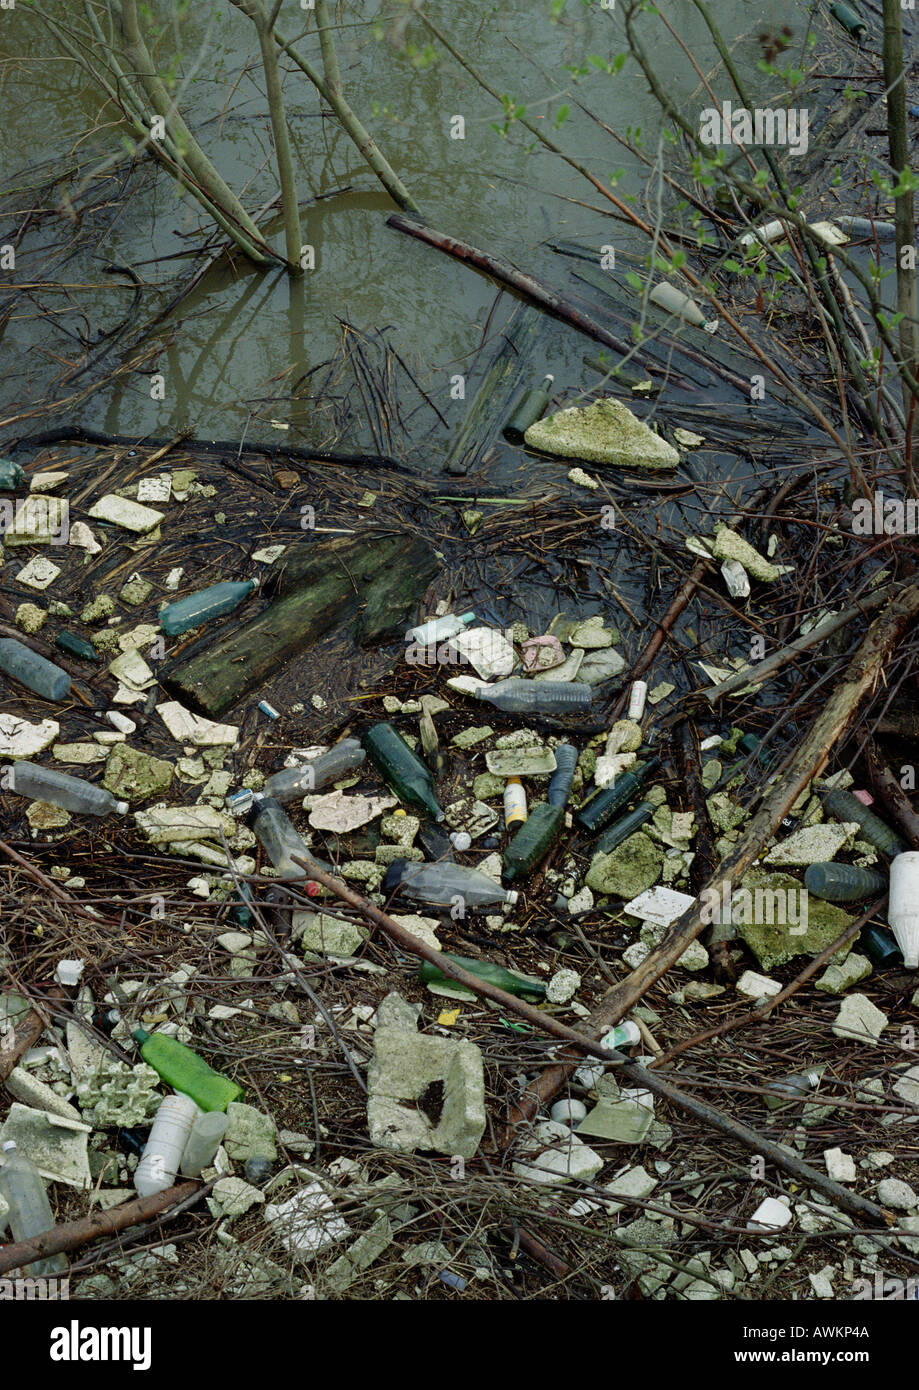 Riverbank polluted with trash Stock Photo